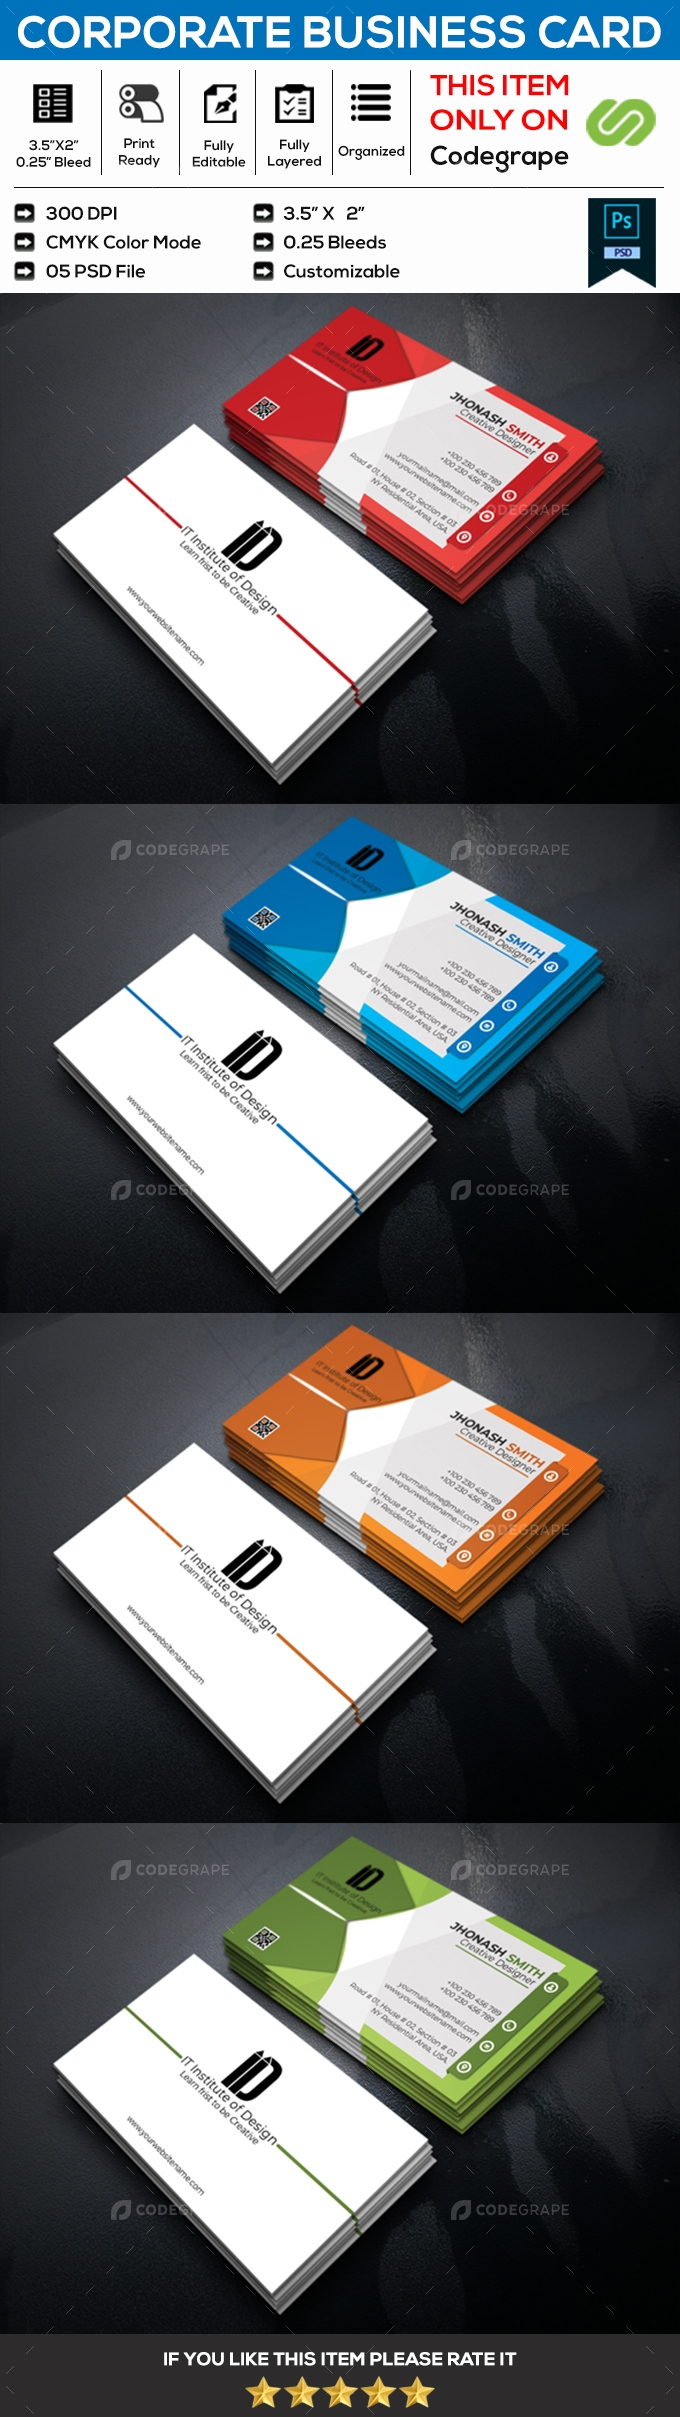 Corporate Business Card